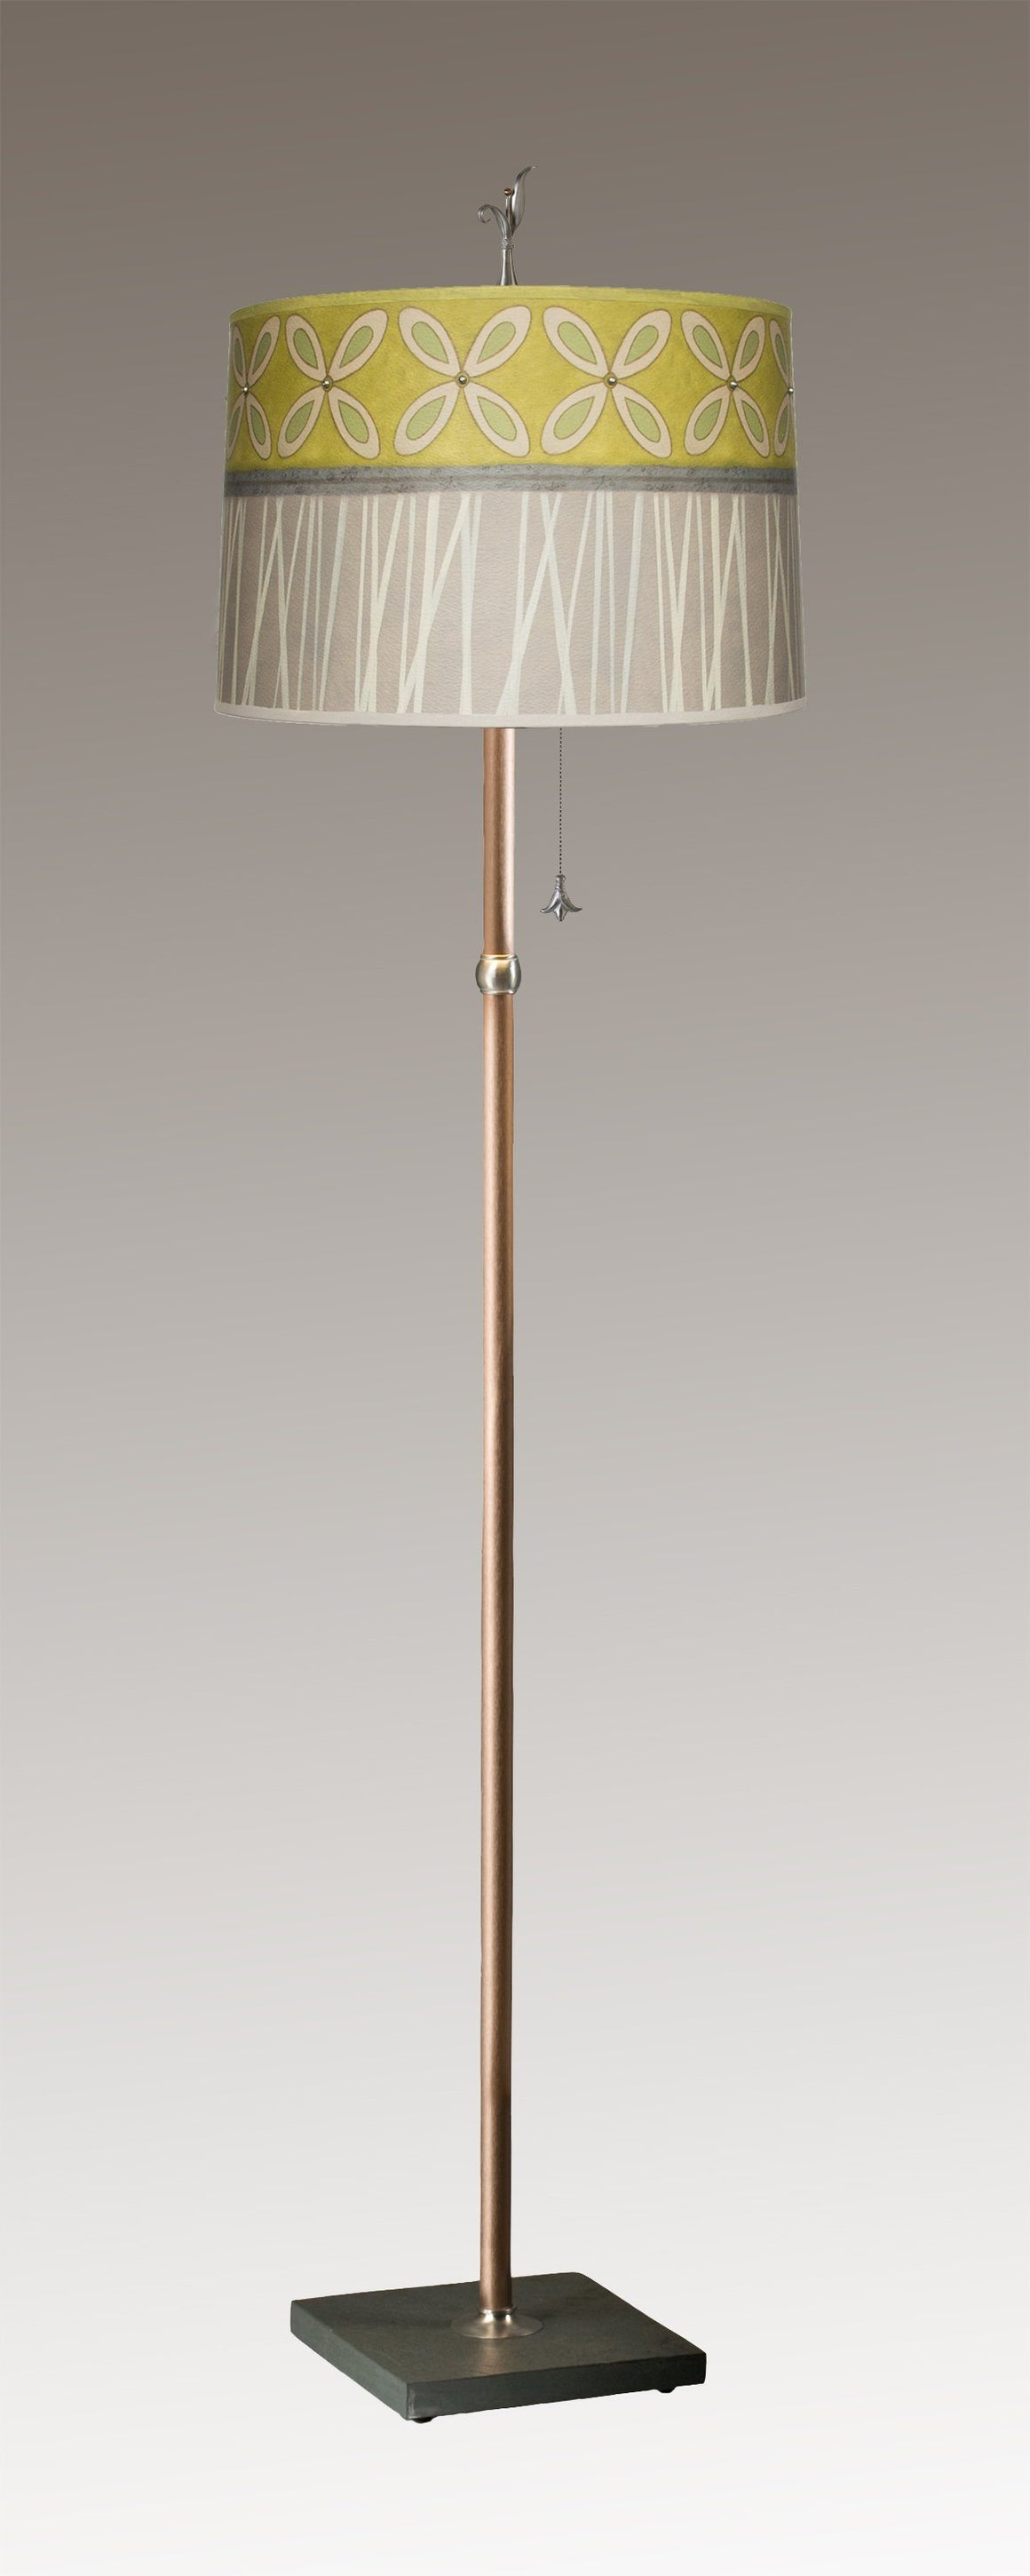 Copper Floor Lamp on Vermont Slate with Large Drum Shade in Kiwi